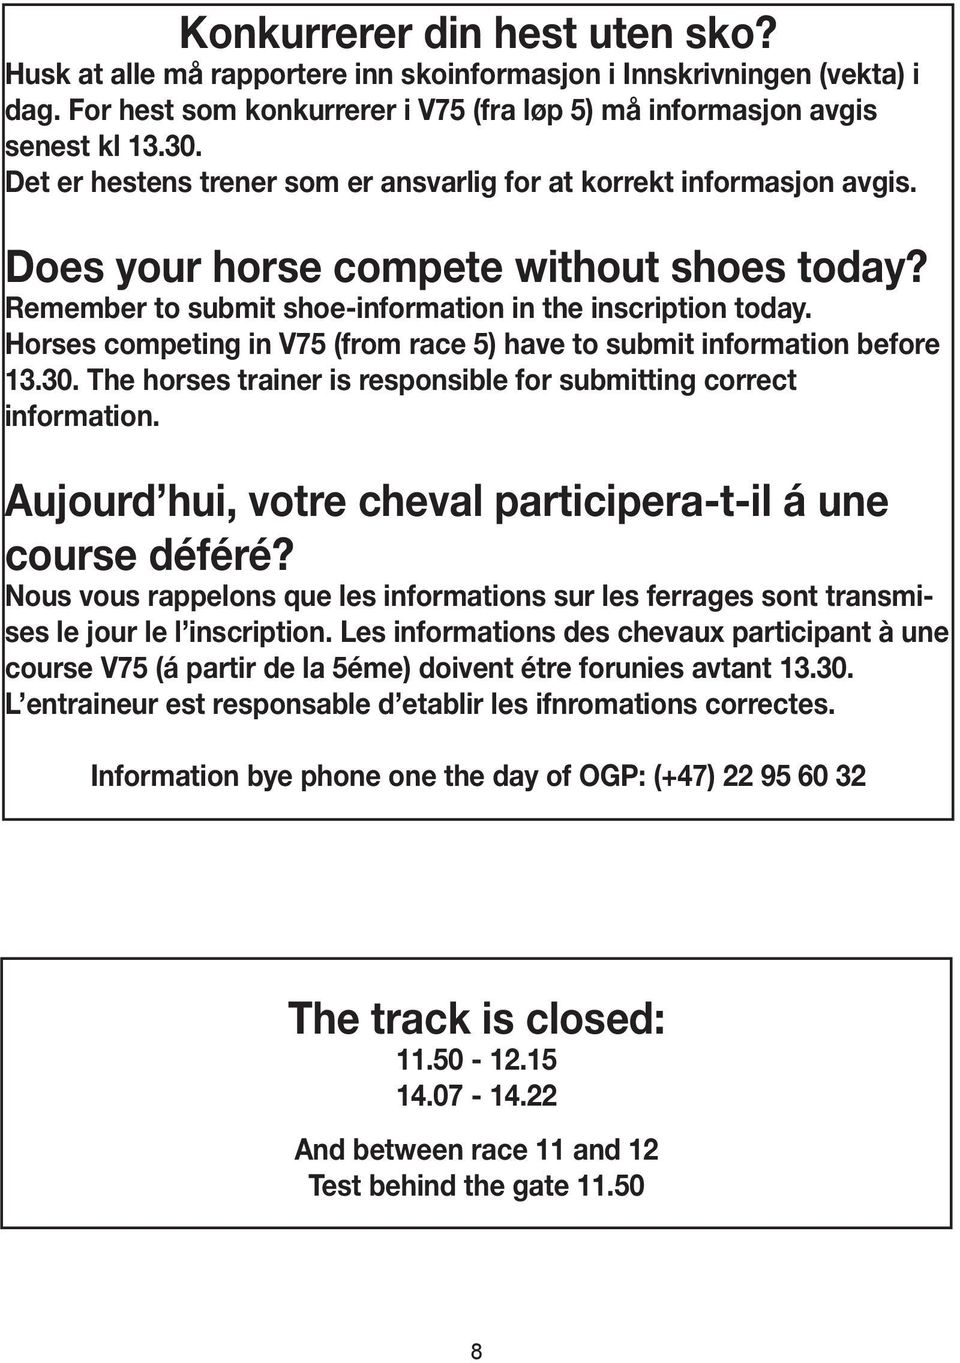 Horses competing in V75 (from race 5) have to submit information before 13.30. The horses trainer is responsible for submitting correct information.